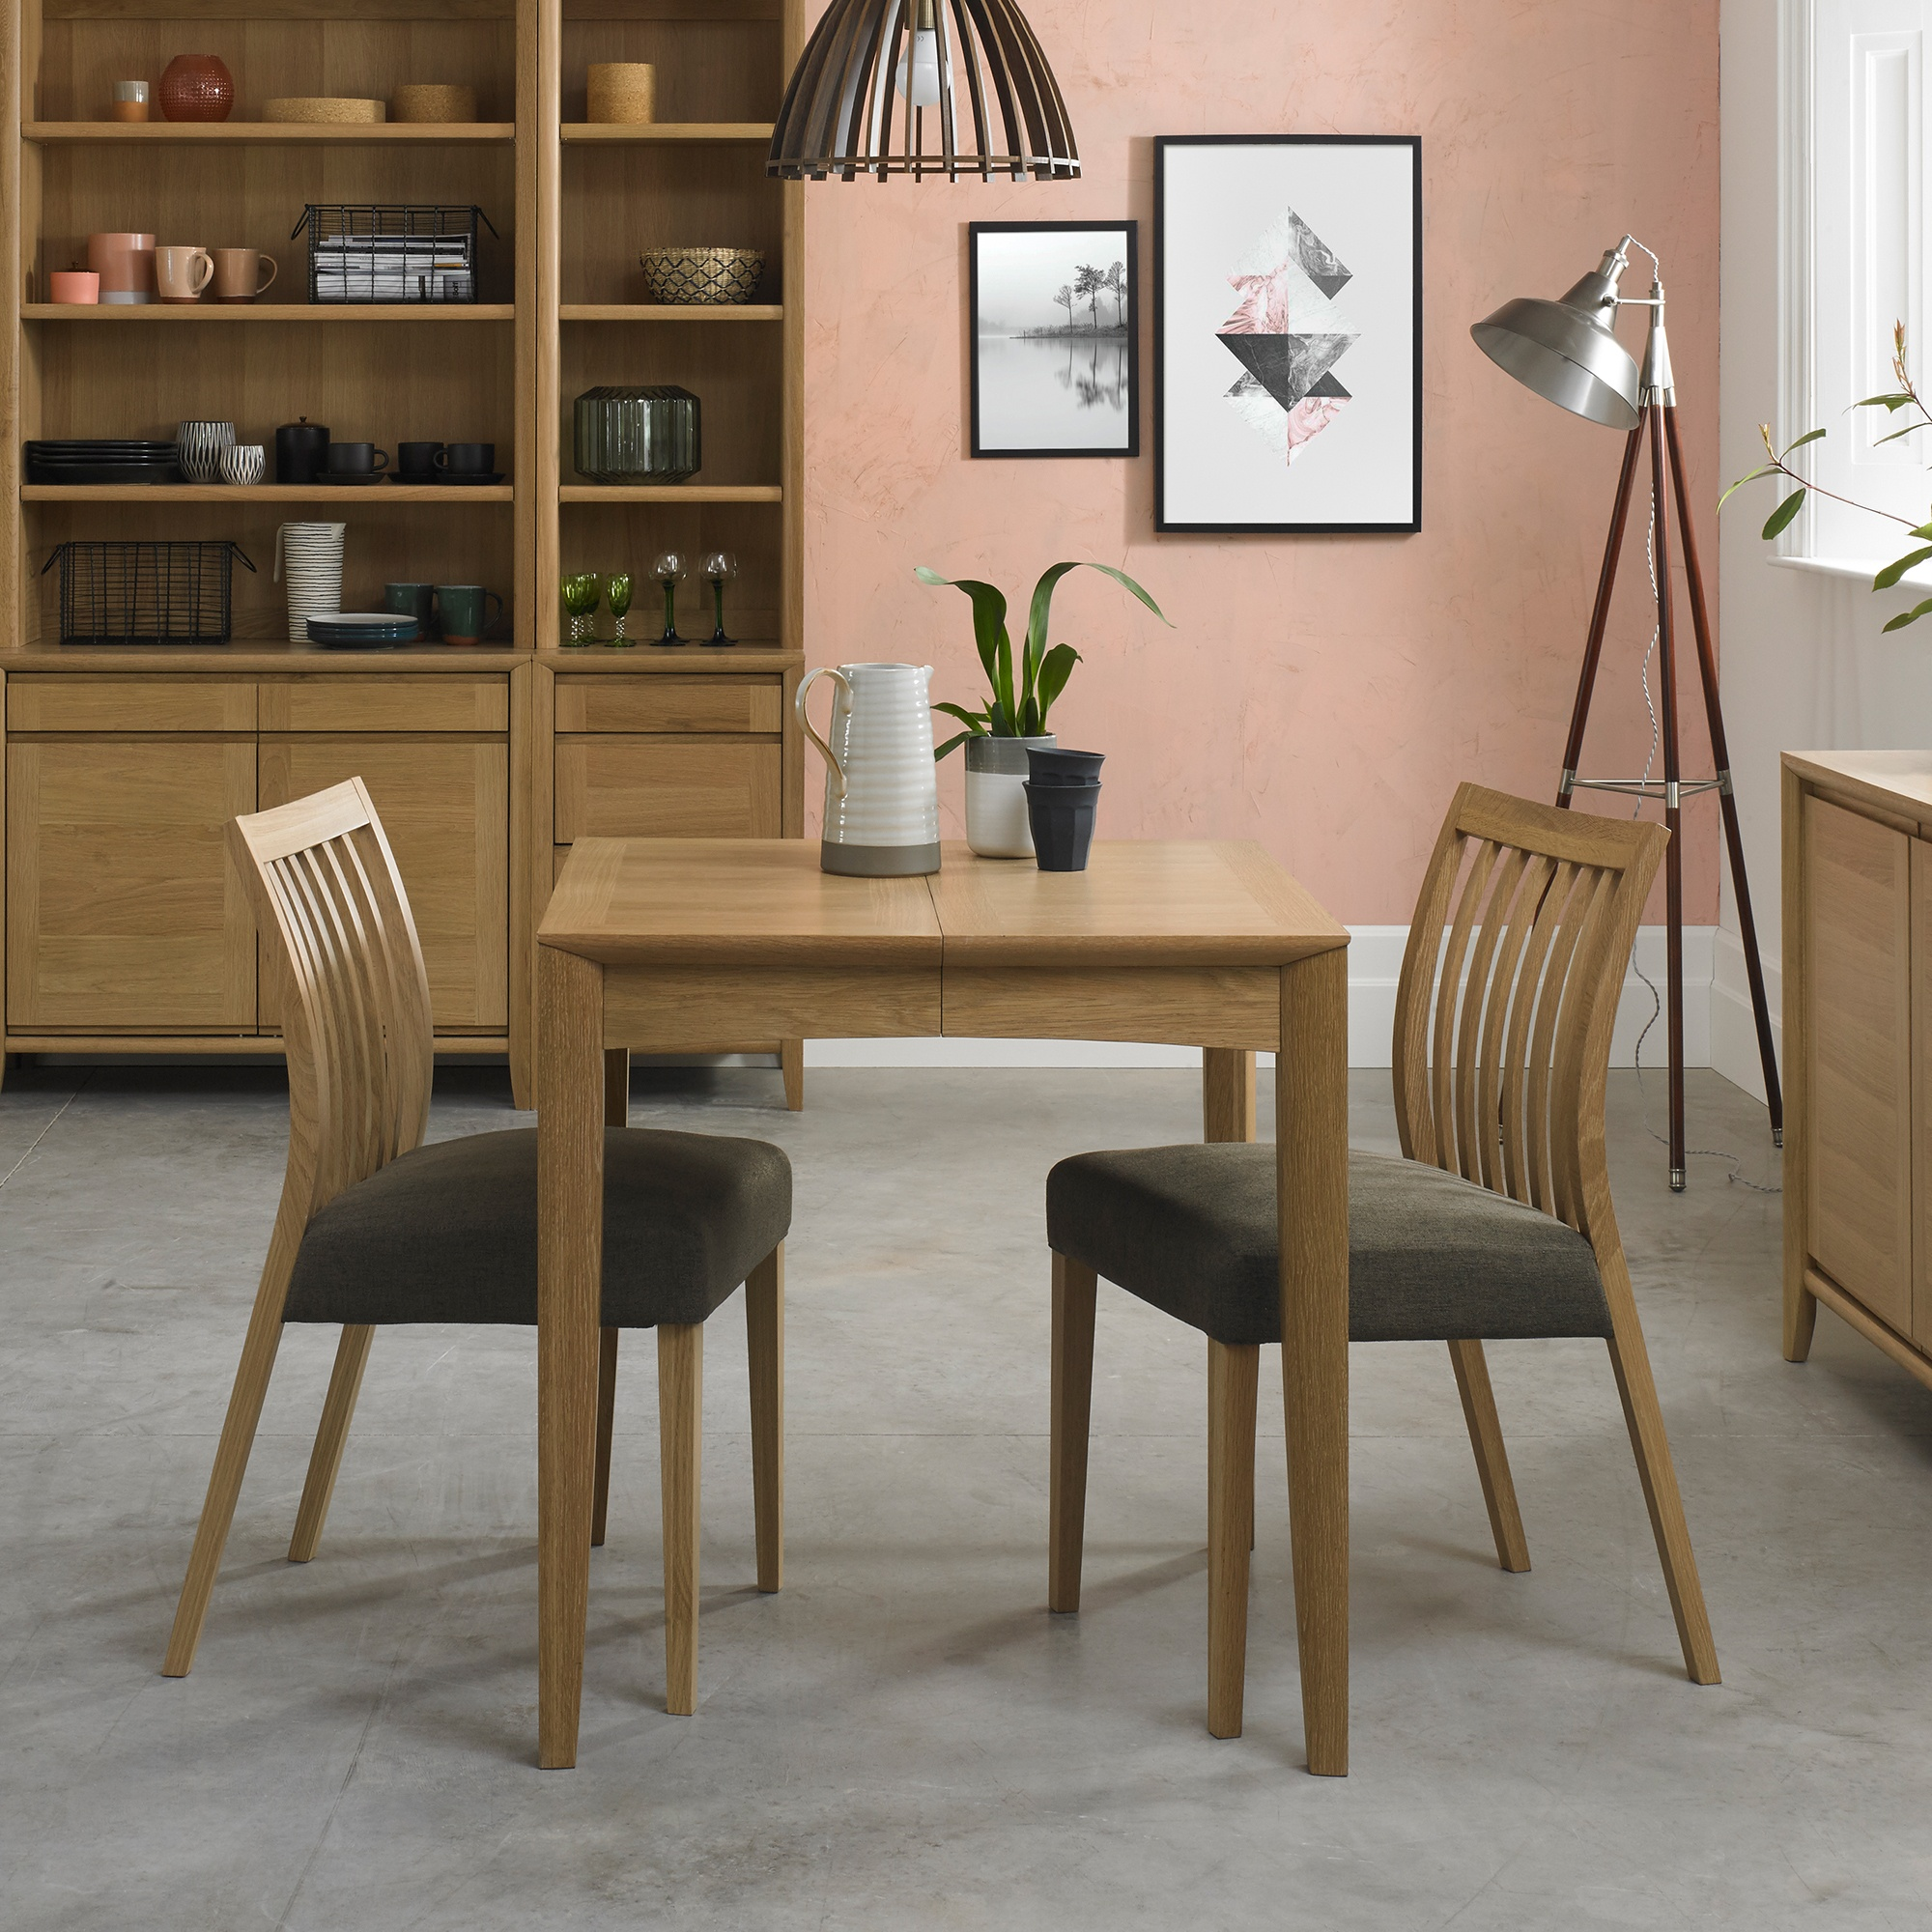 Cookes Collection Romy Small Dining Table And 2 Chairs Dining Furniture